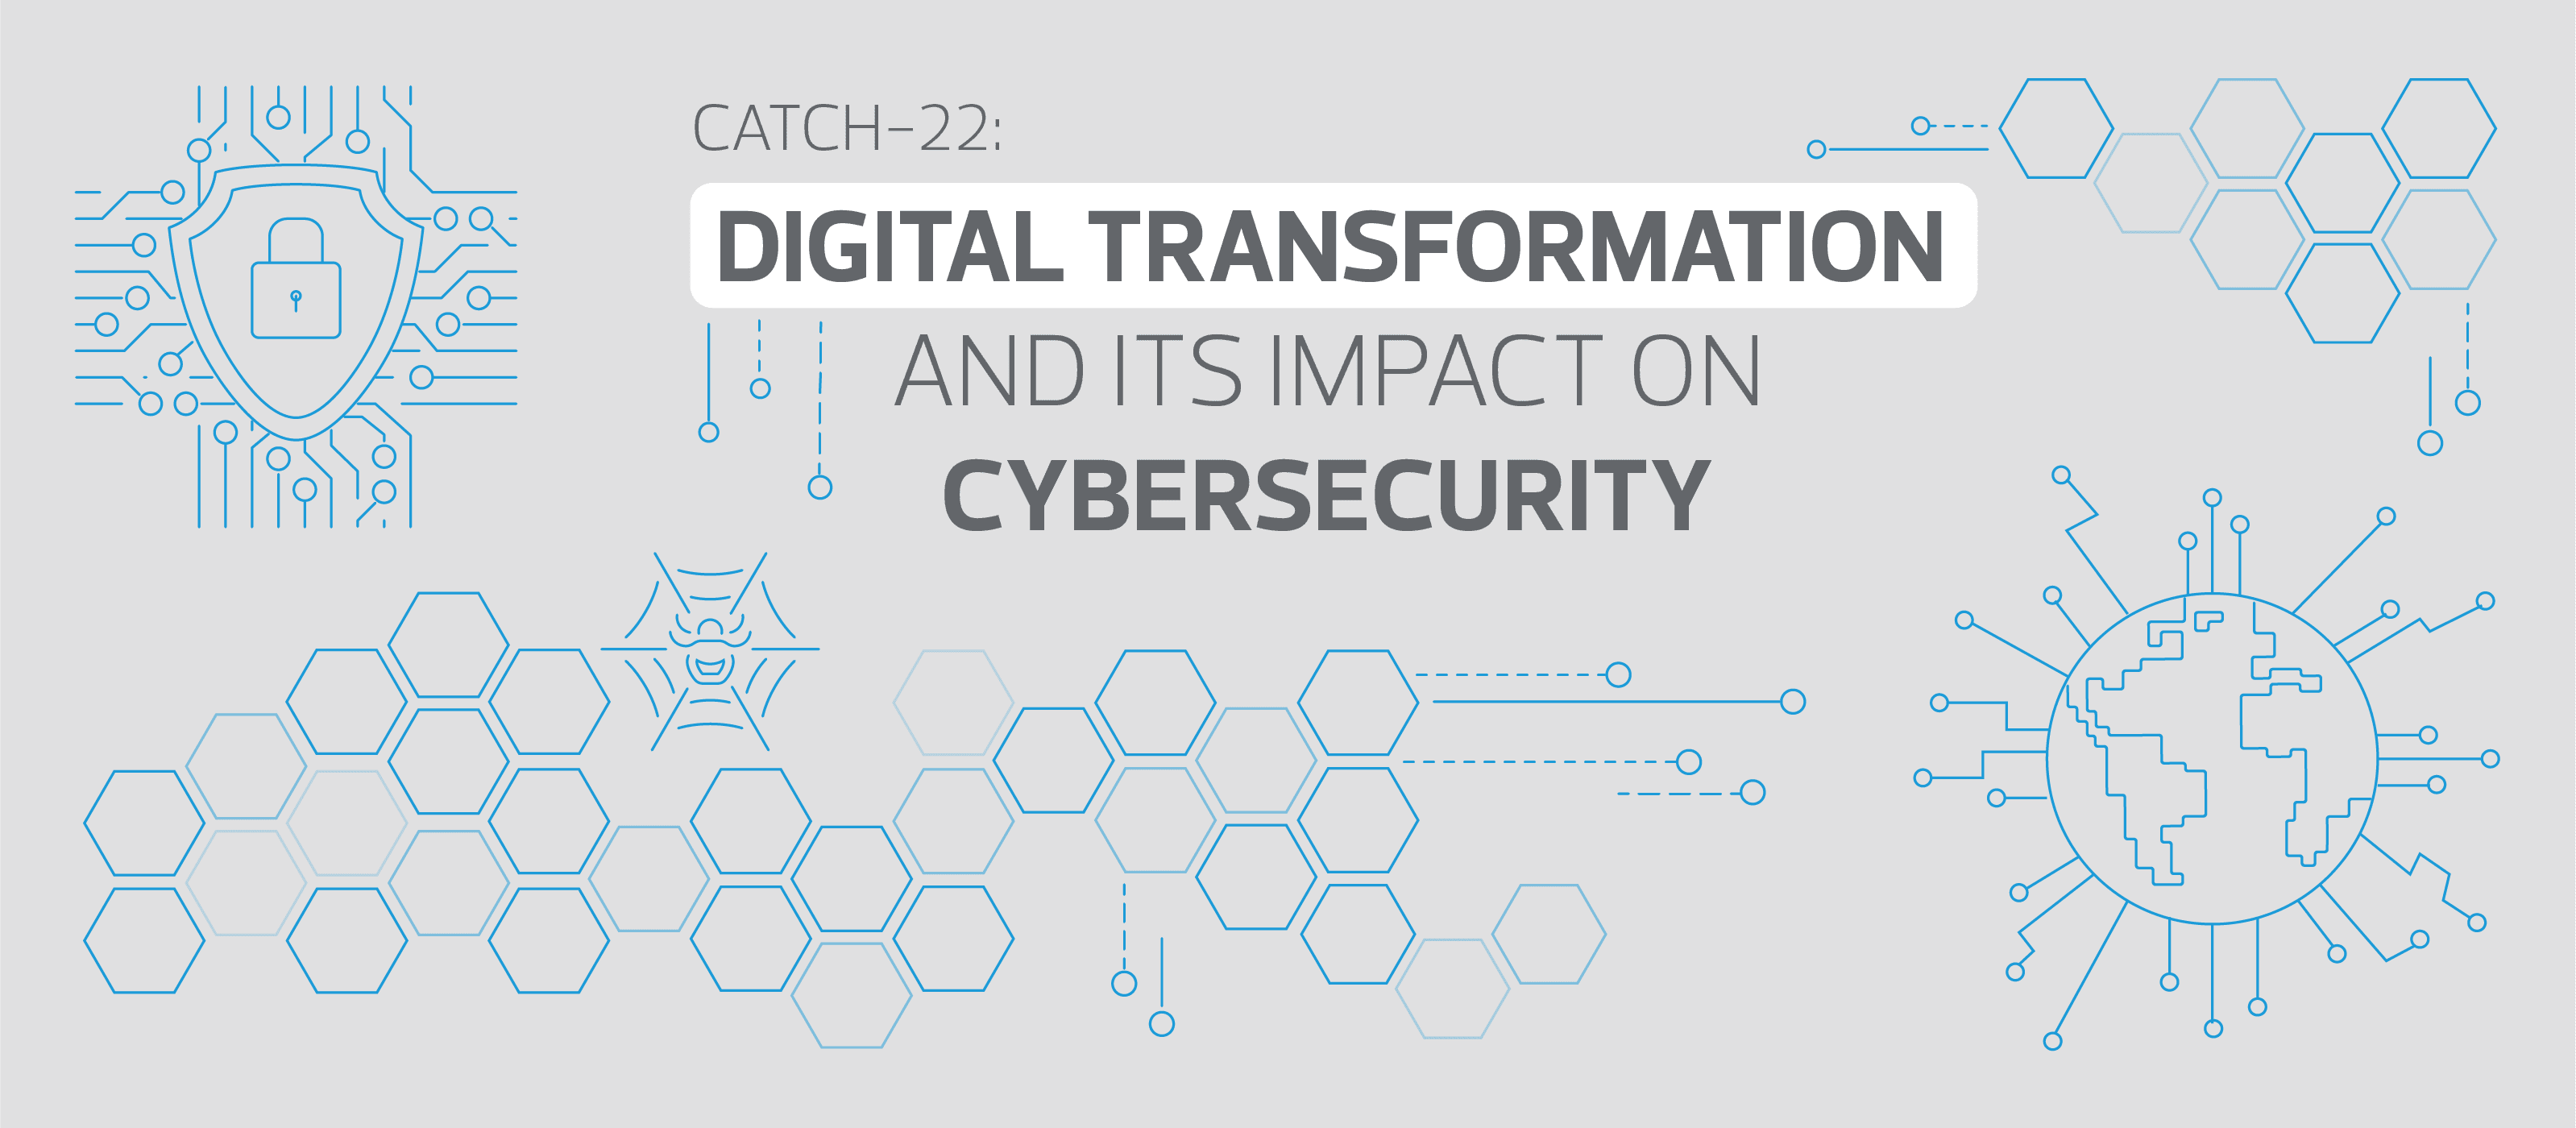 Digital transformation and its impact on cybersecurity